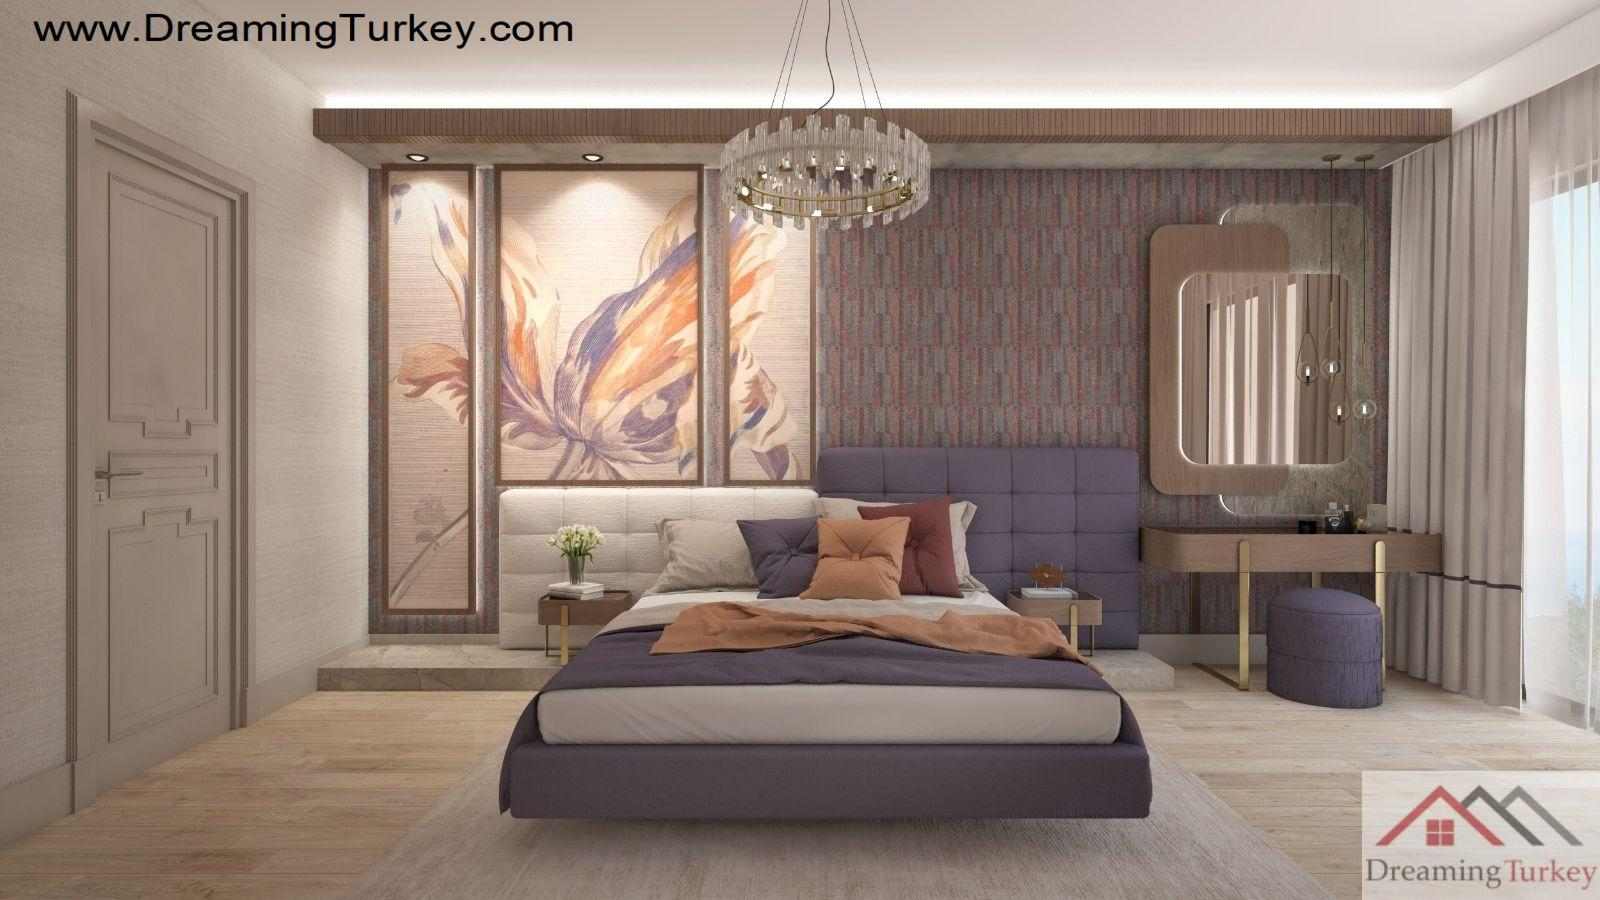 5-Bedroom Duplex with 2 Living Rooms Near the Sea in Istanbul